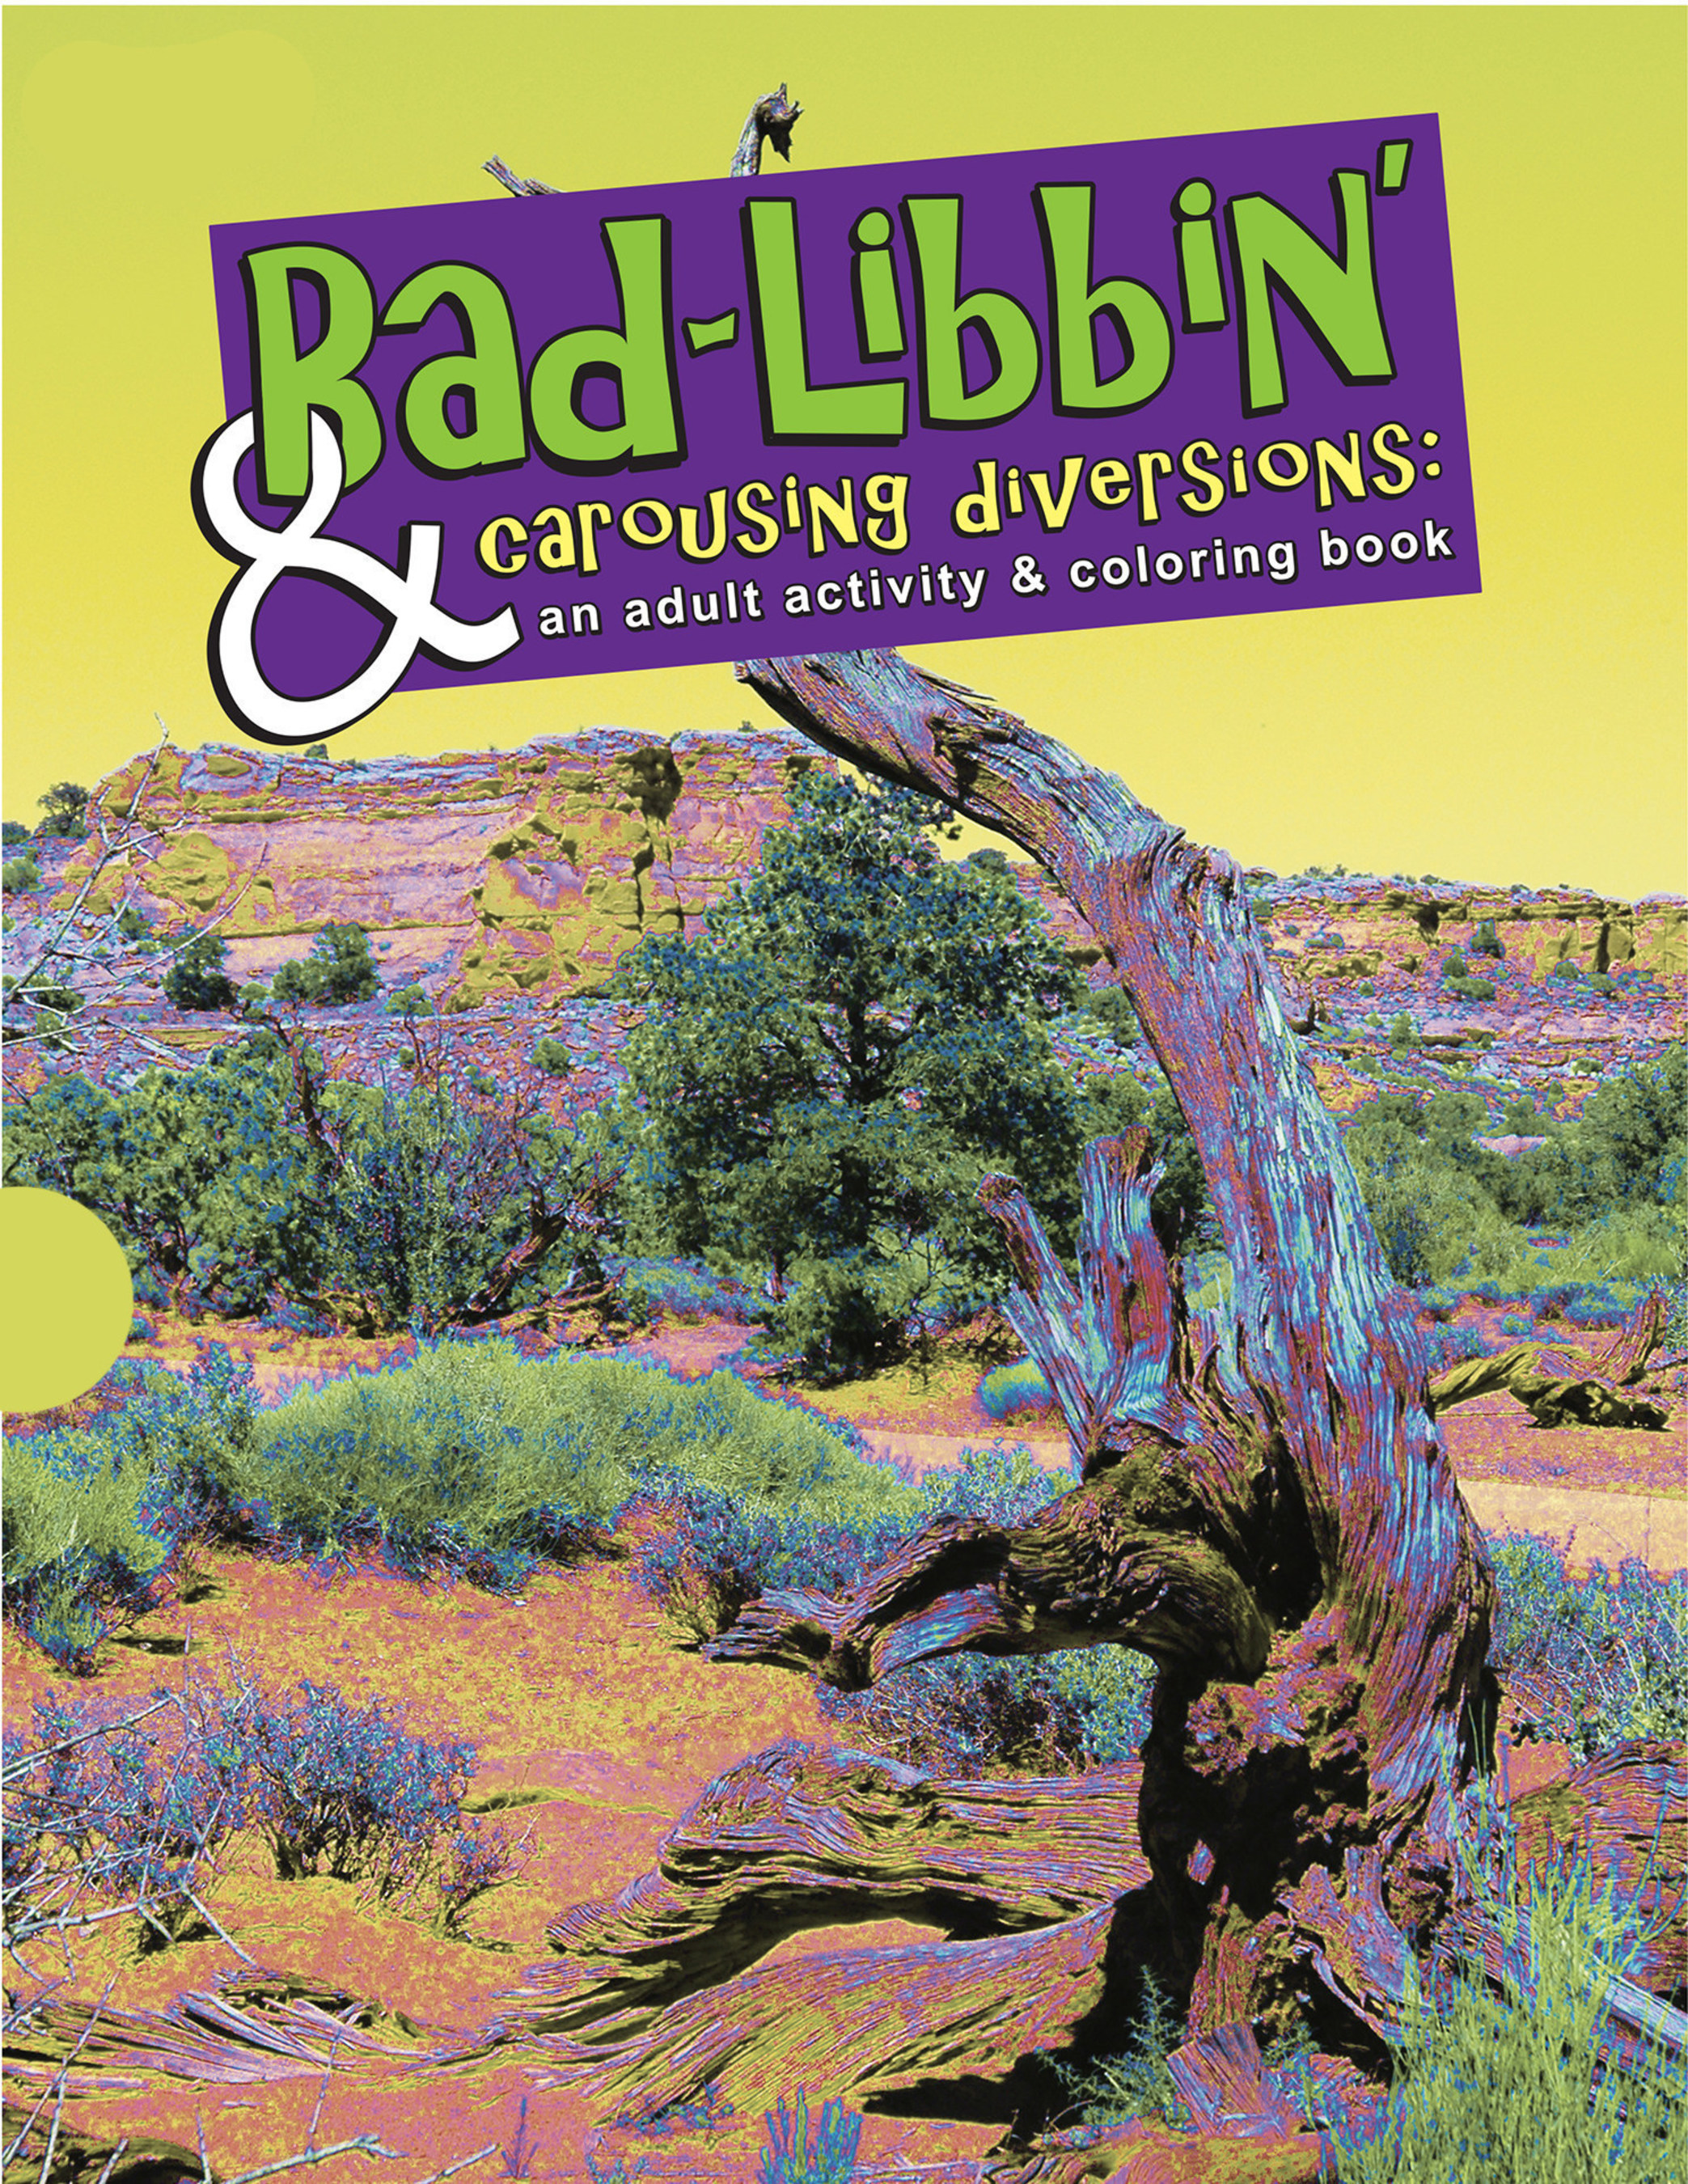 Bad Libbin' & Carousing Diversions: An Adult Activity & Coloring Book 80 Pages of Coloring, Bad